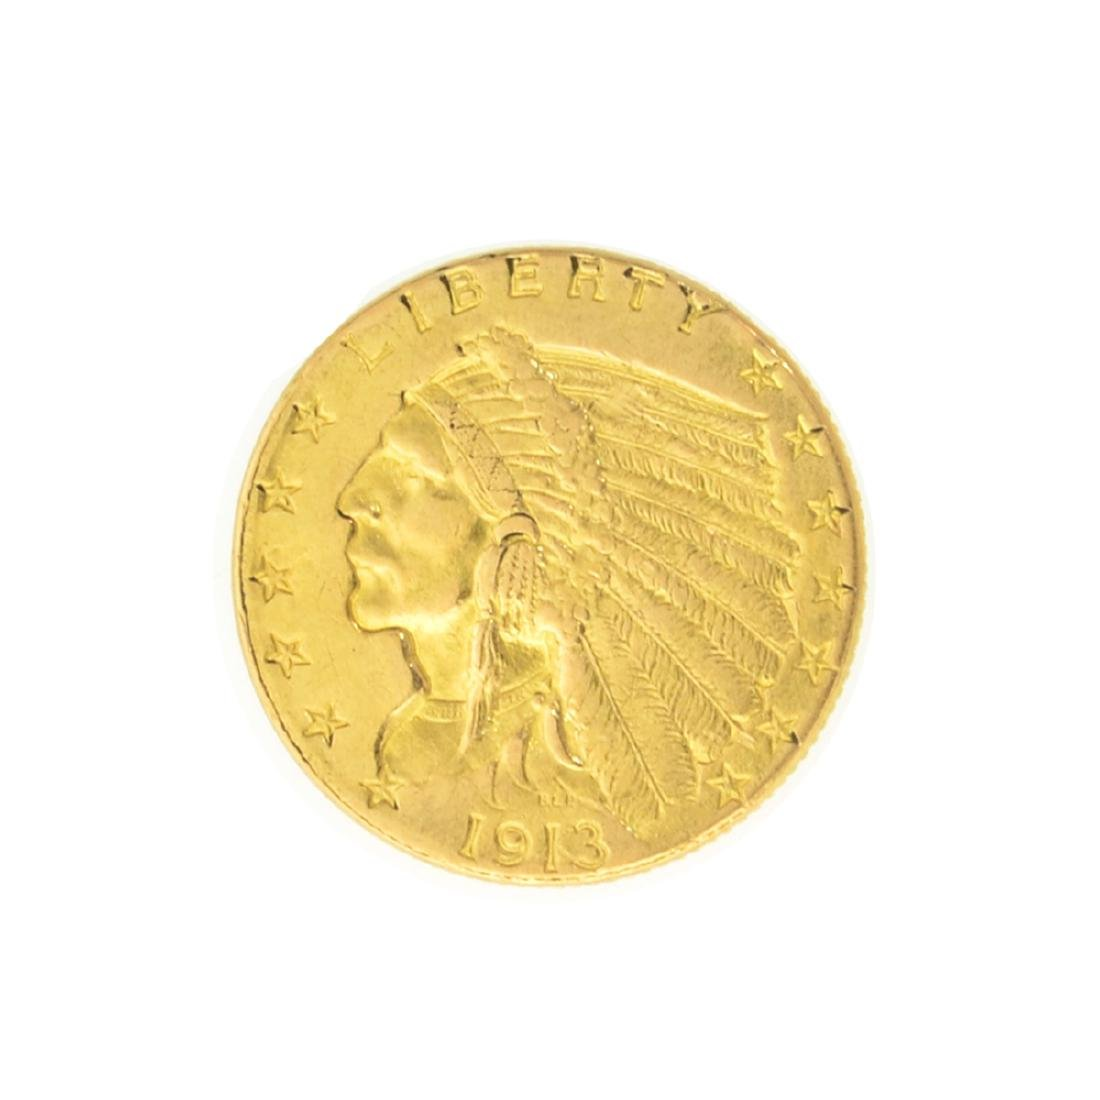 1913 $2.50 U.S. Indian Head Gold Coin - Great